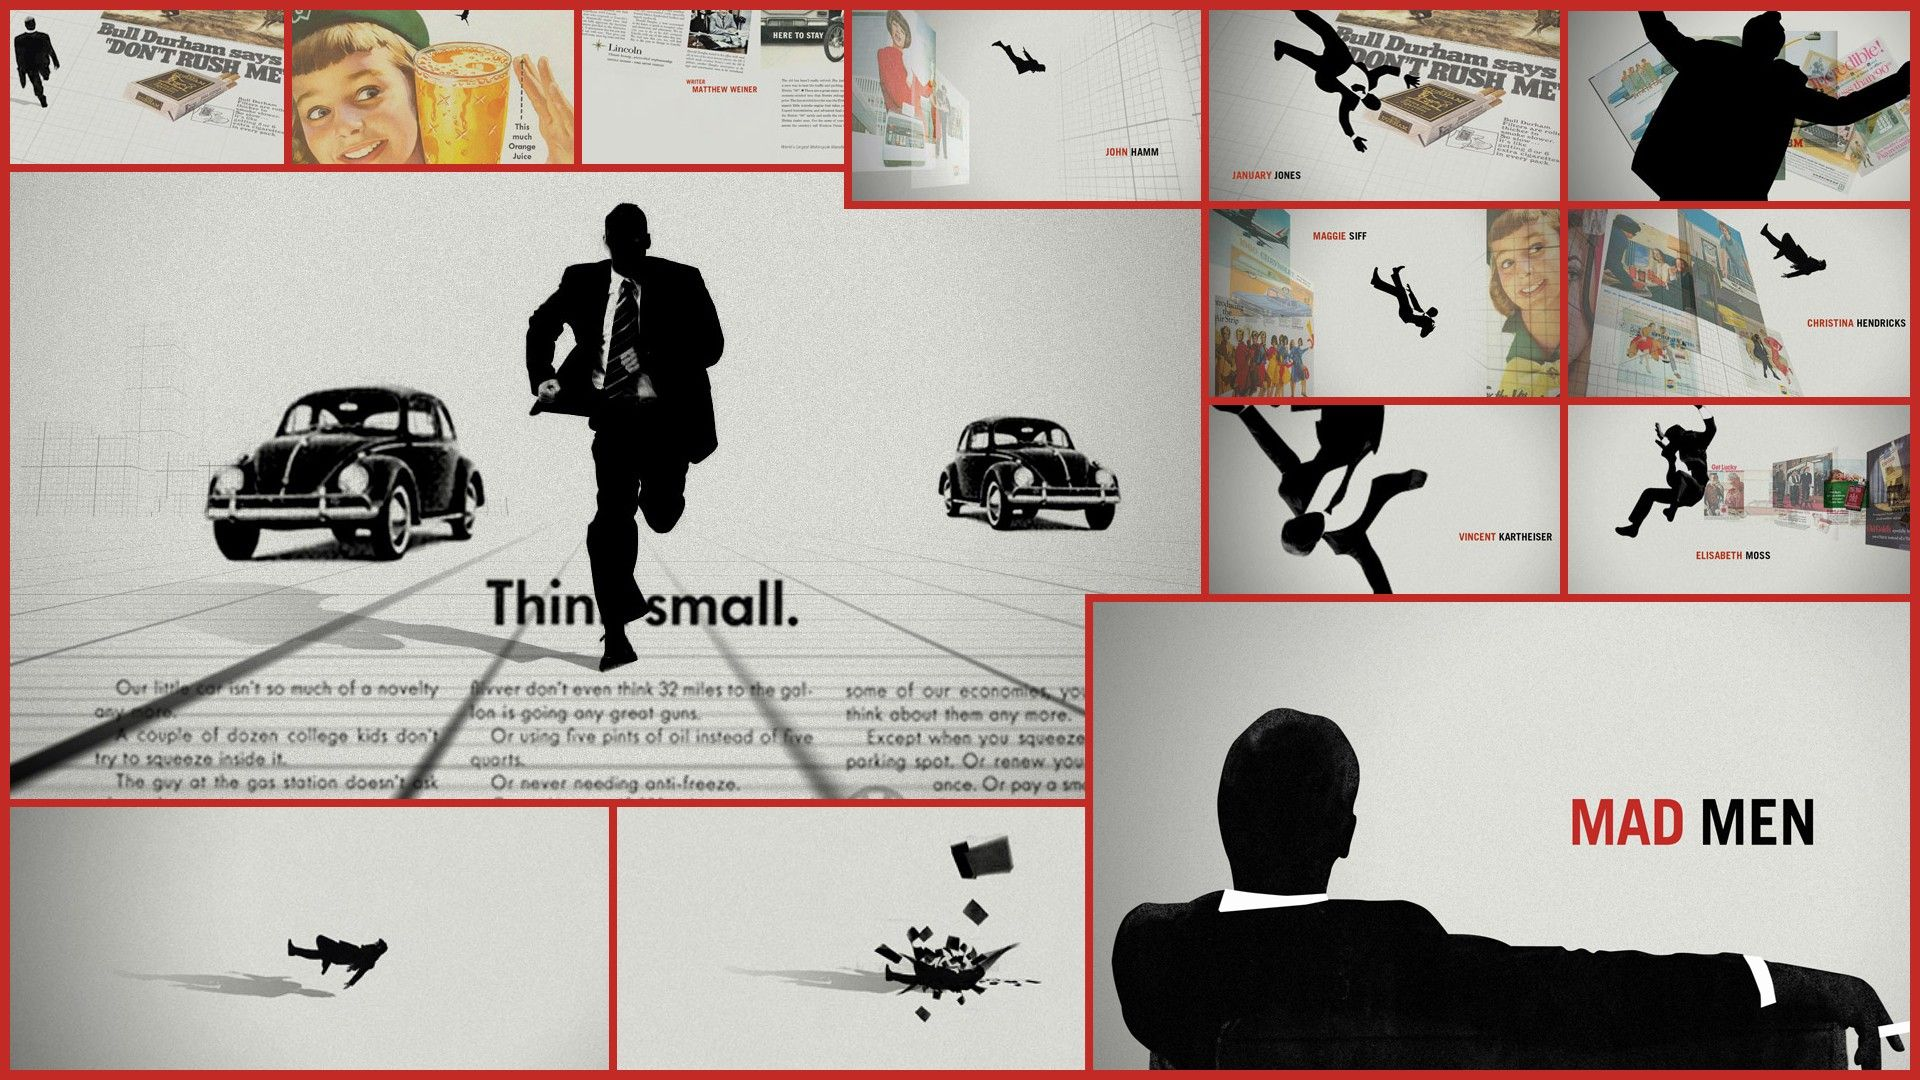 Mad Men Series 1920x1080 Hd Wallpaper Mad Men Men Hd Wallpaper